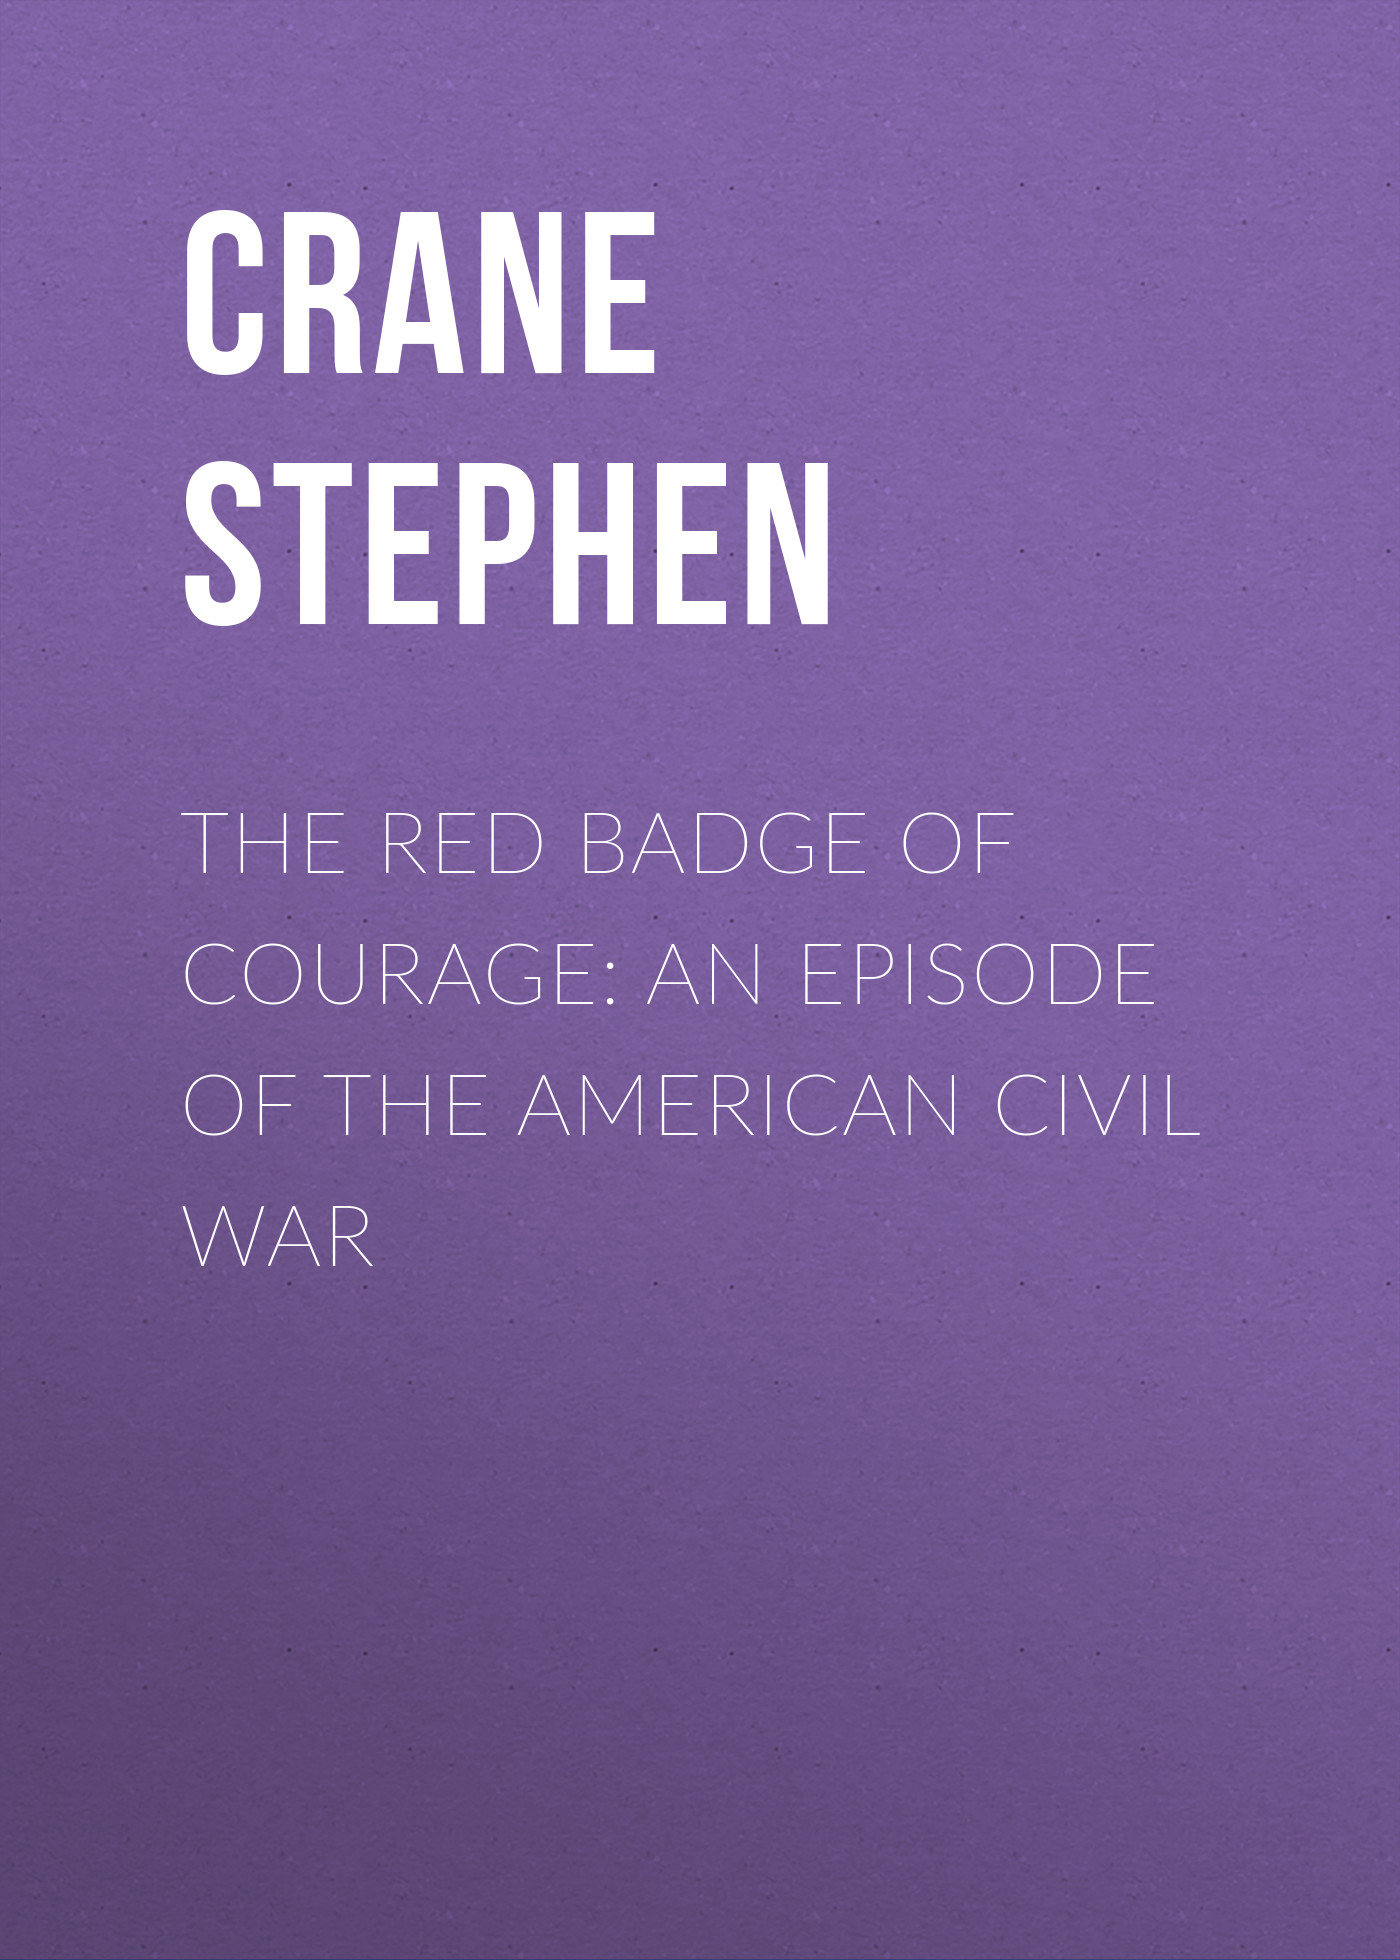 Crane Stephen The Red Badge of Courage: An Episode of the American Civil War marie van vorst war letters of an american woman